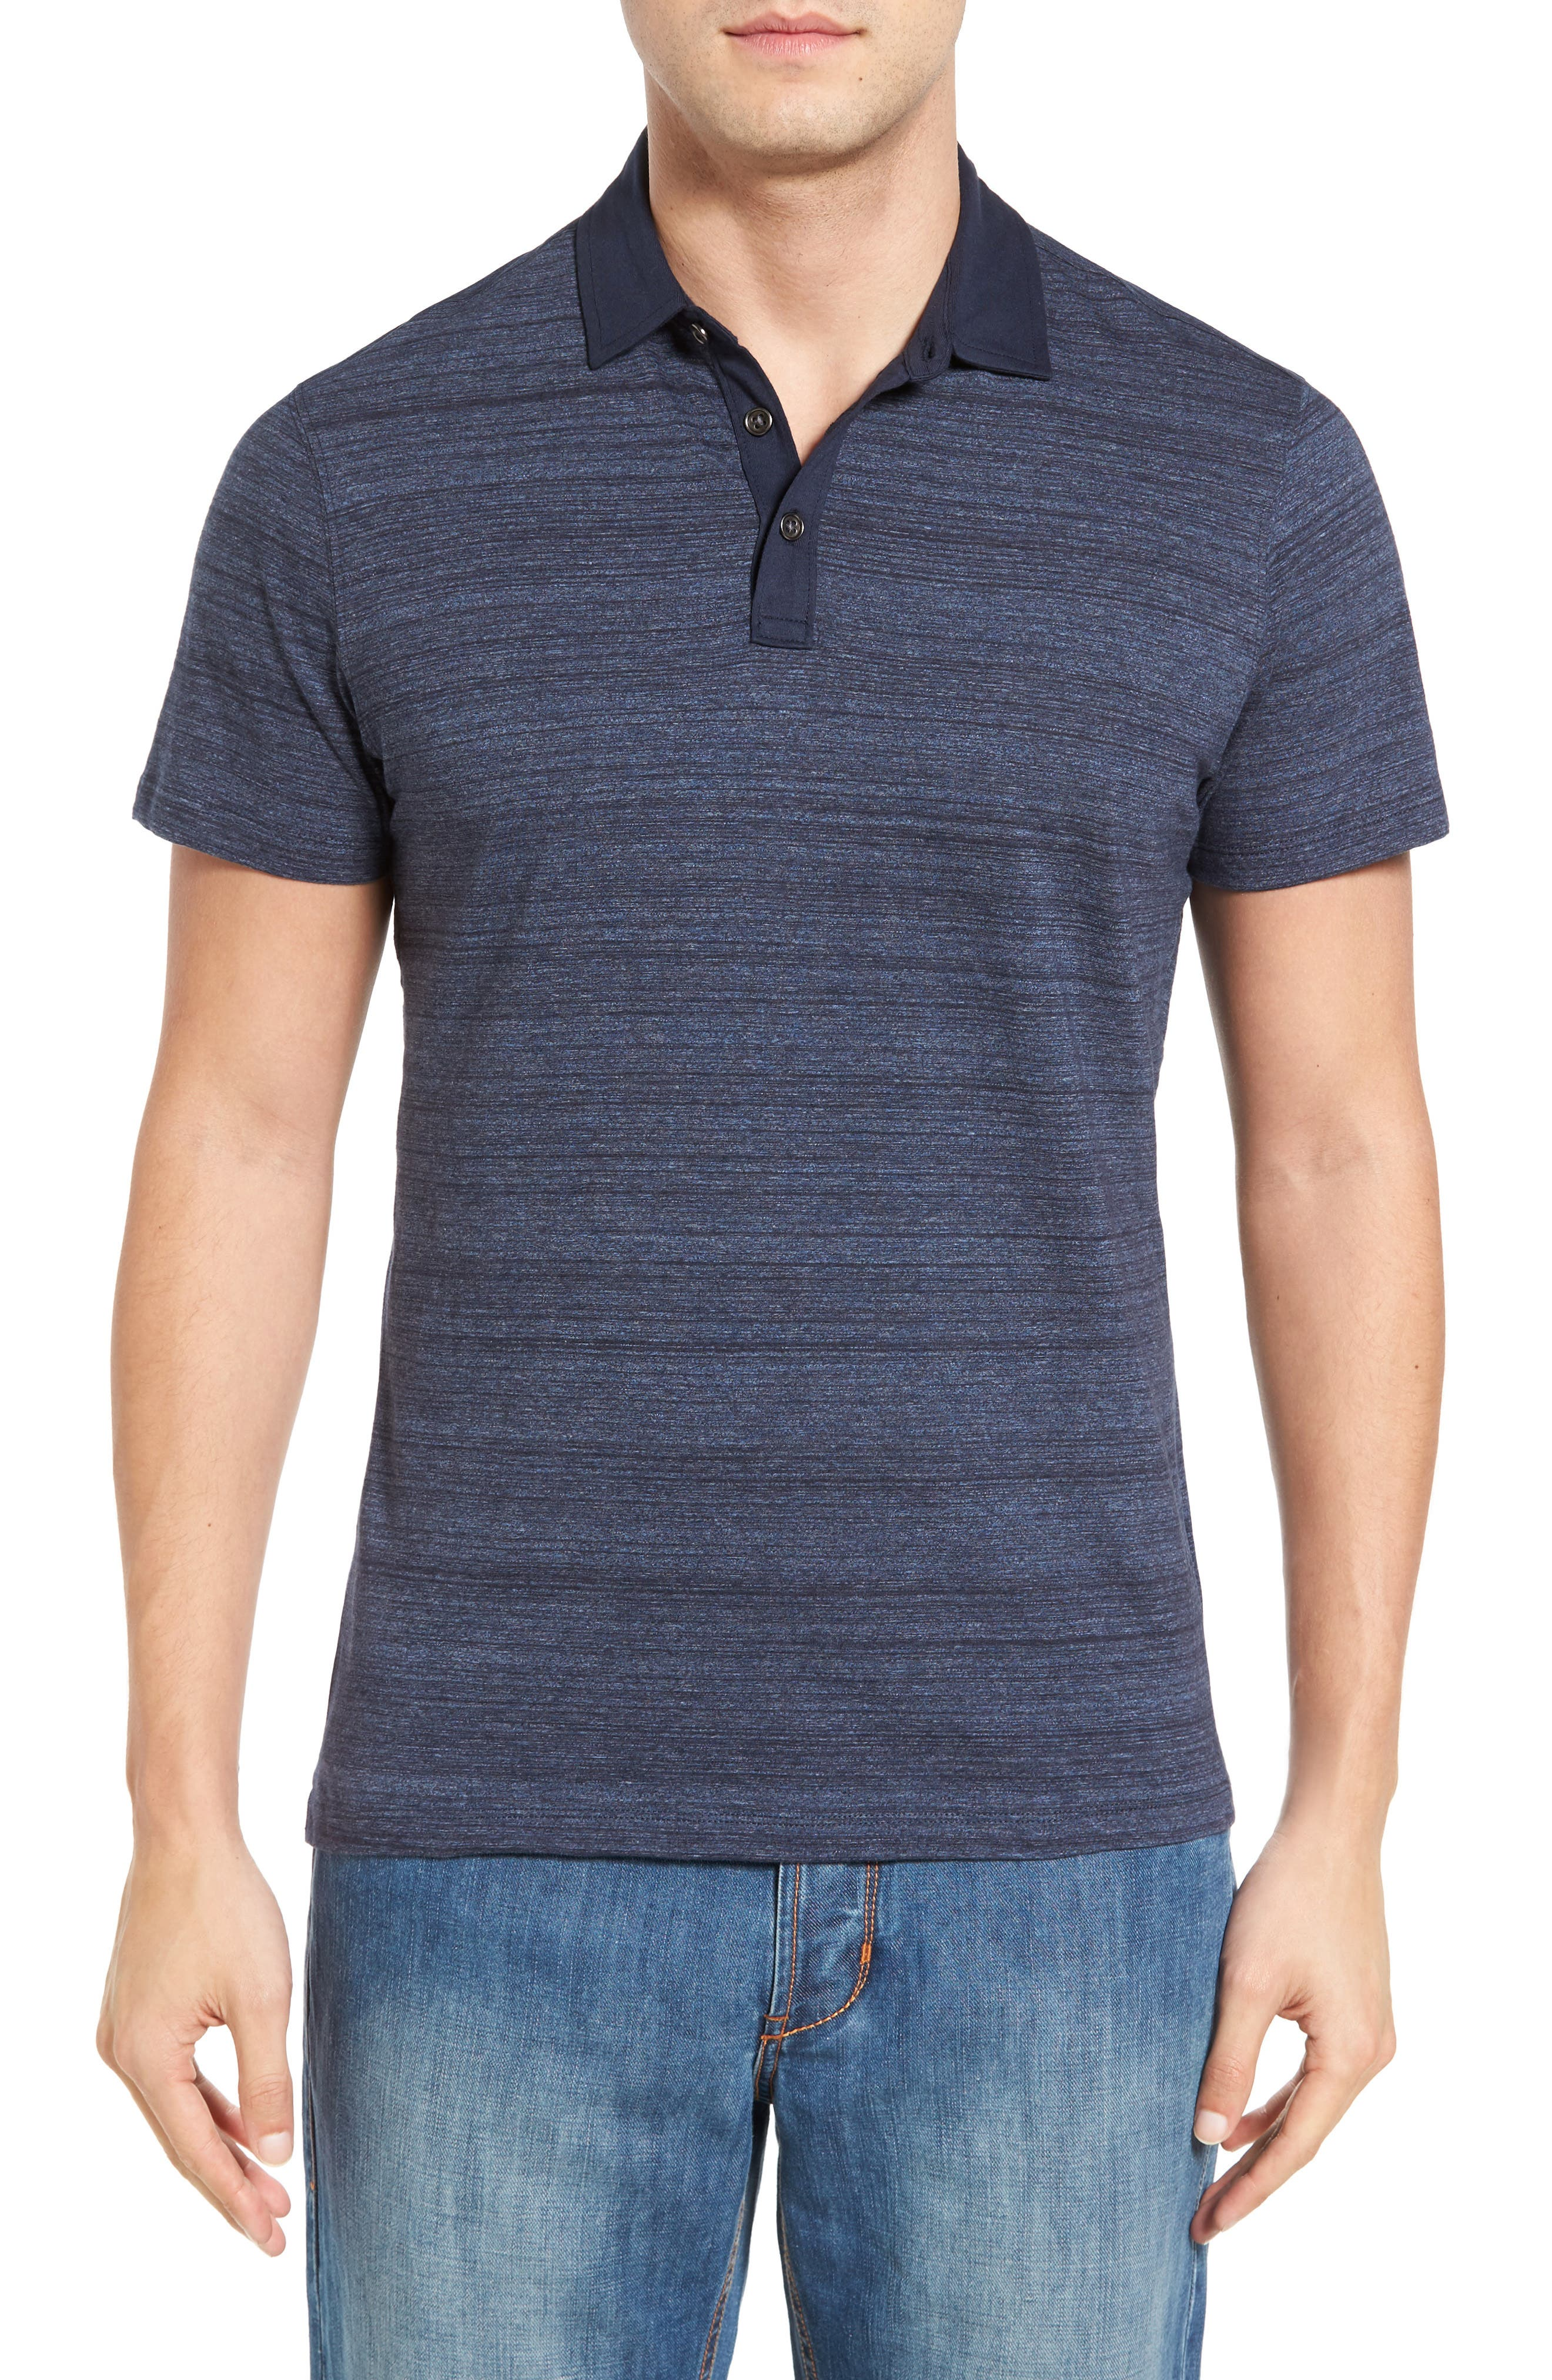 Robert Barakett Genson Regular Fit Polo